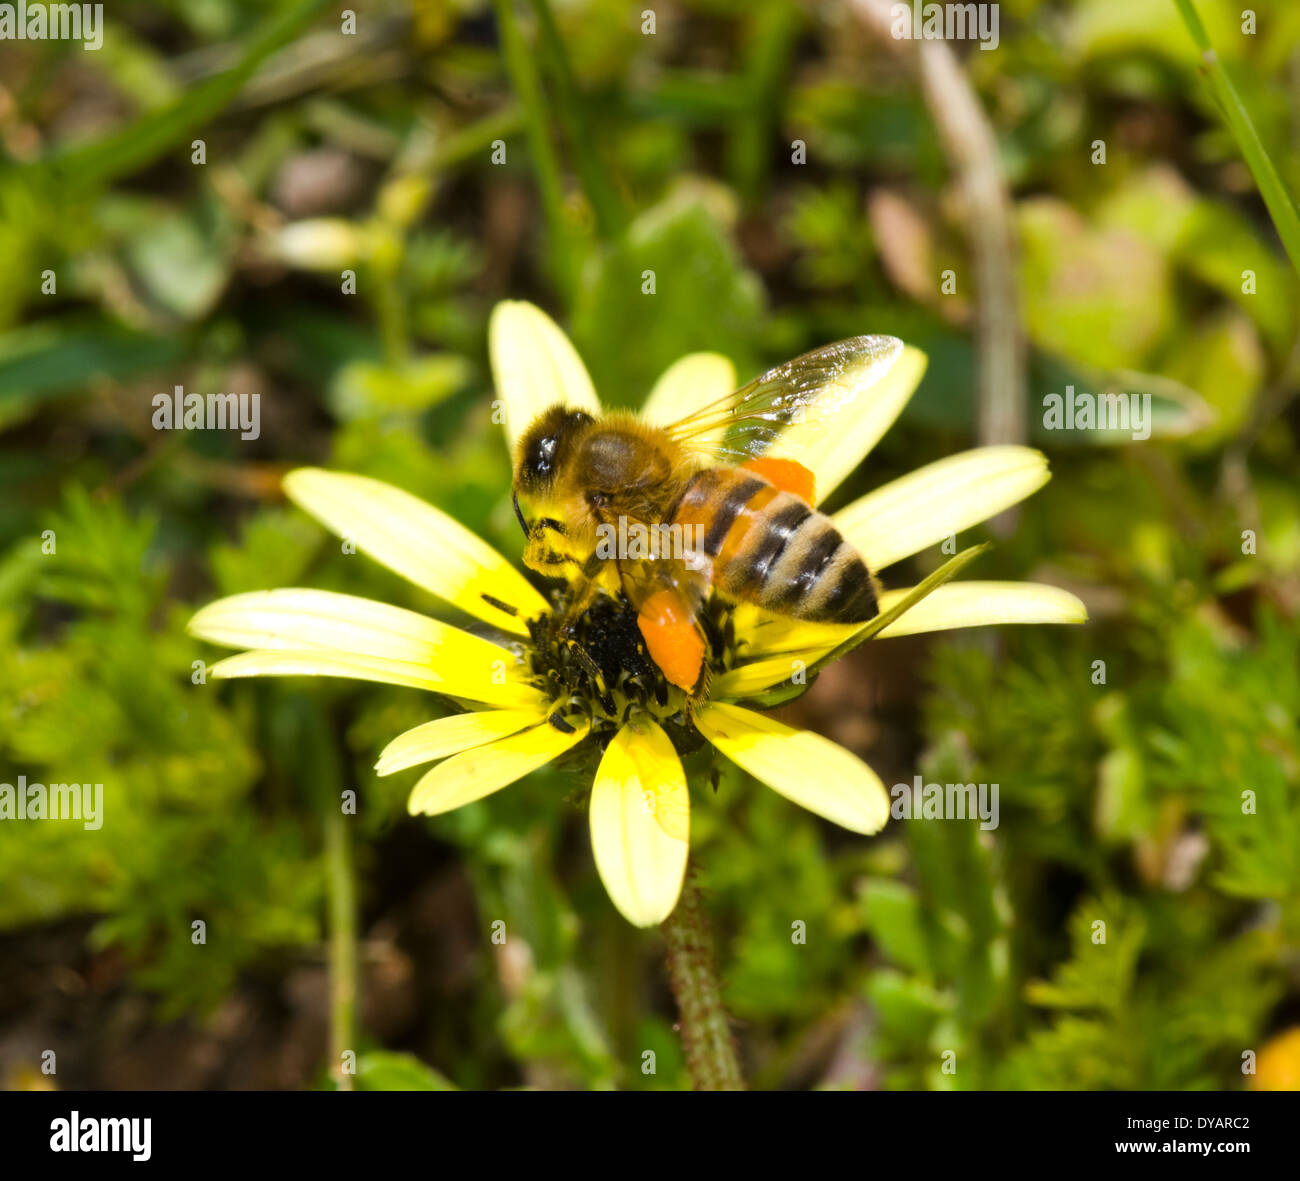 Honey bee pollinating and showing pollen sacs, Wee Jasper, New South Wales, Australia - Stock Image